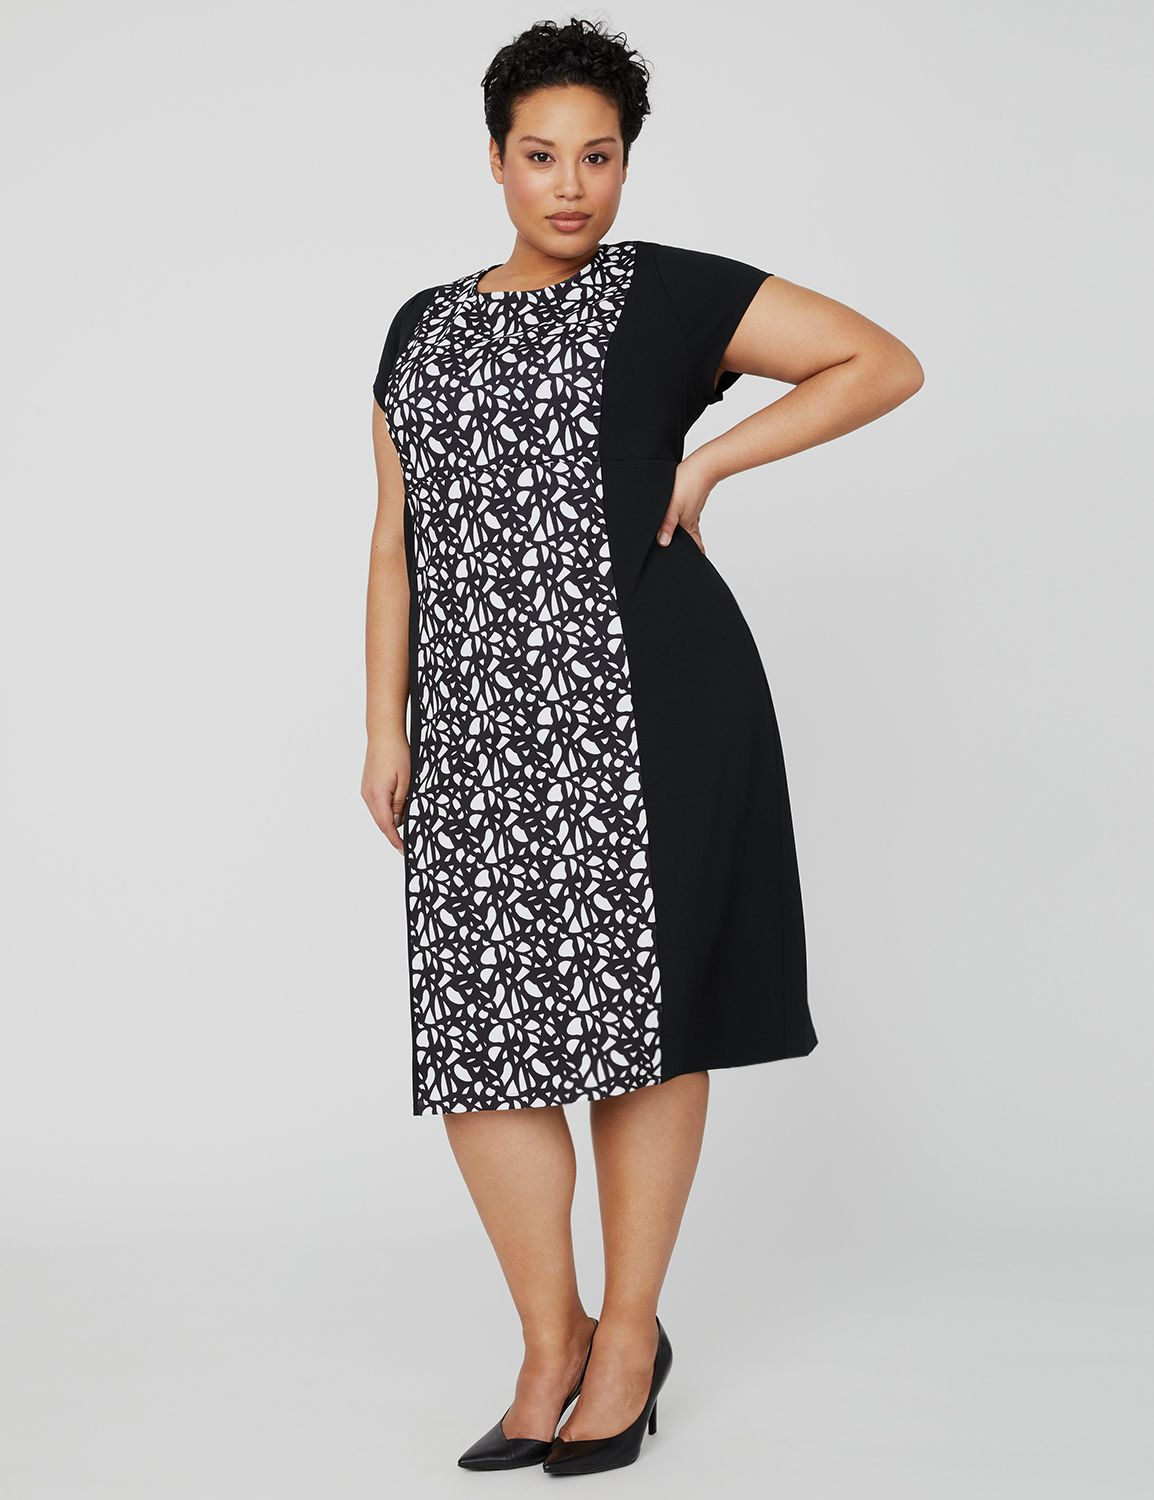 Mirage Crepe Dress 1091427 Printed Knit Crepe Dress MP-300100815